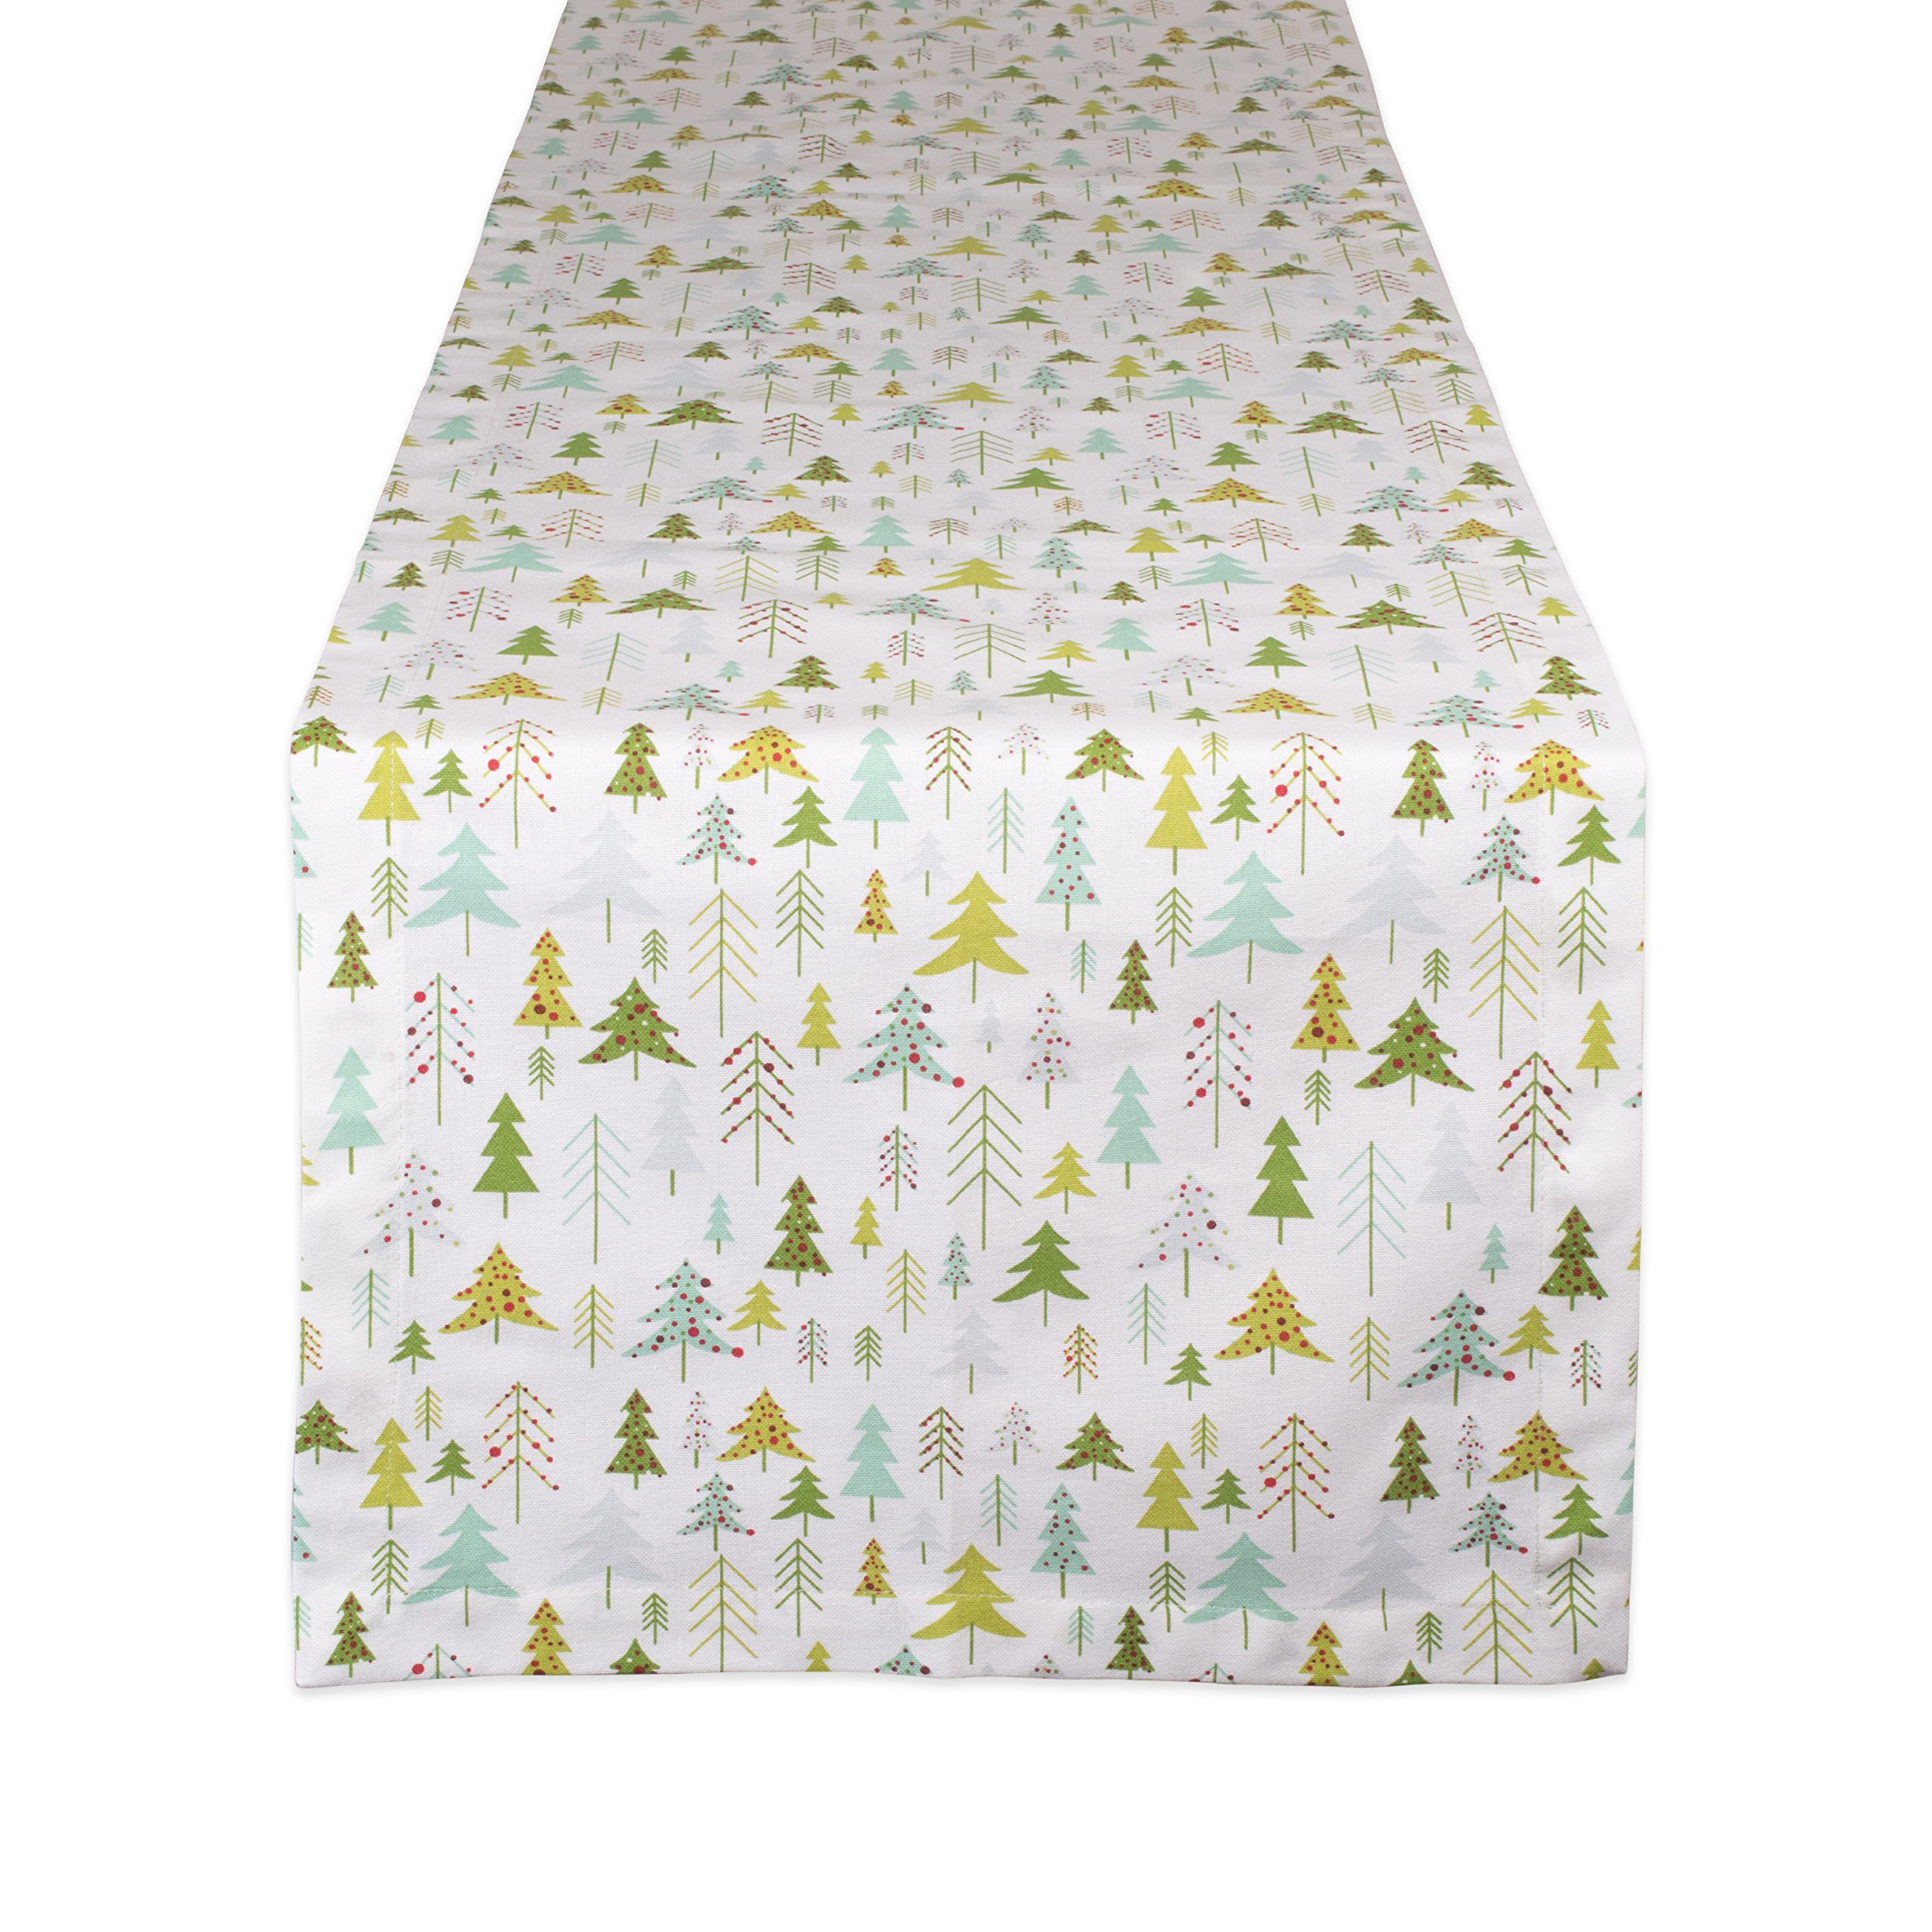 DII CAMZ10878 Table Runner, 14''x108'', Holiday Woods